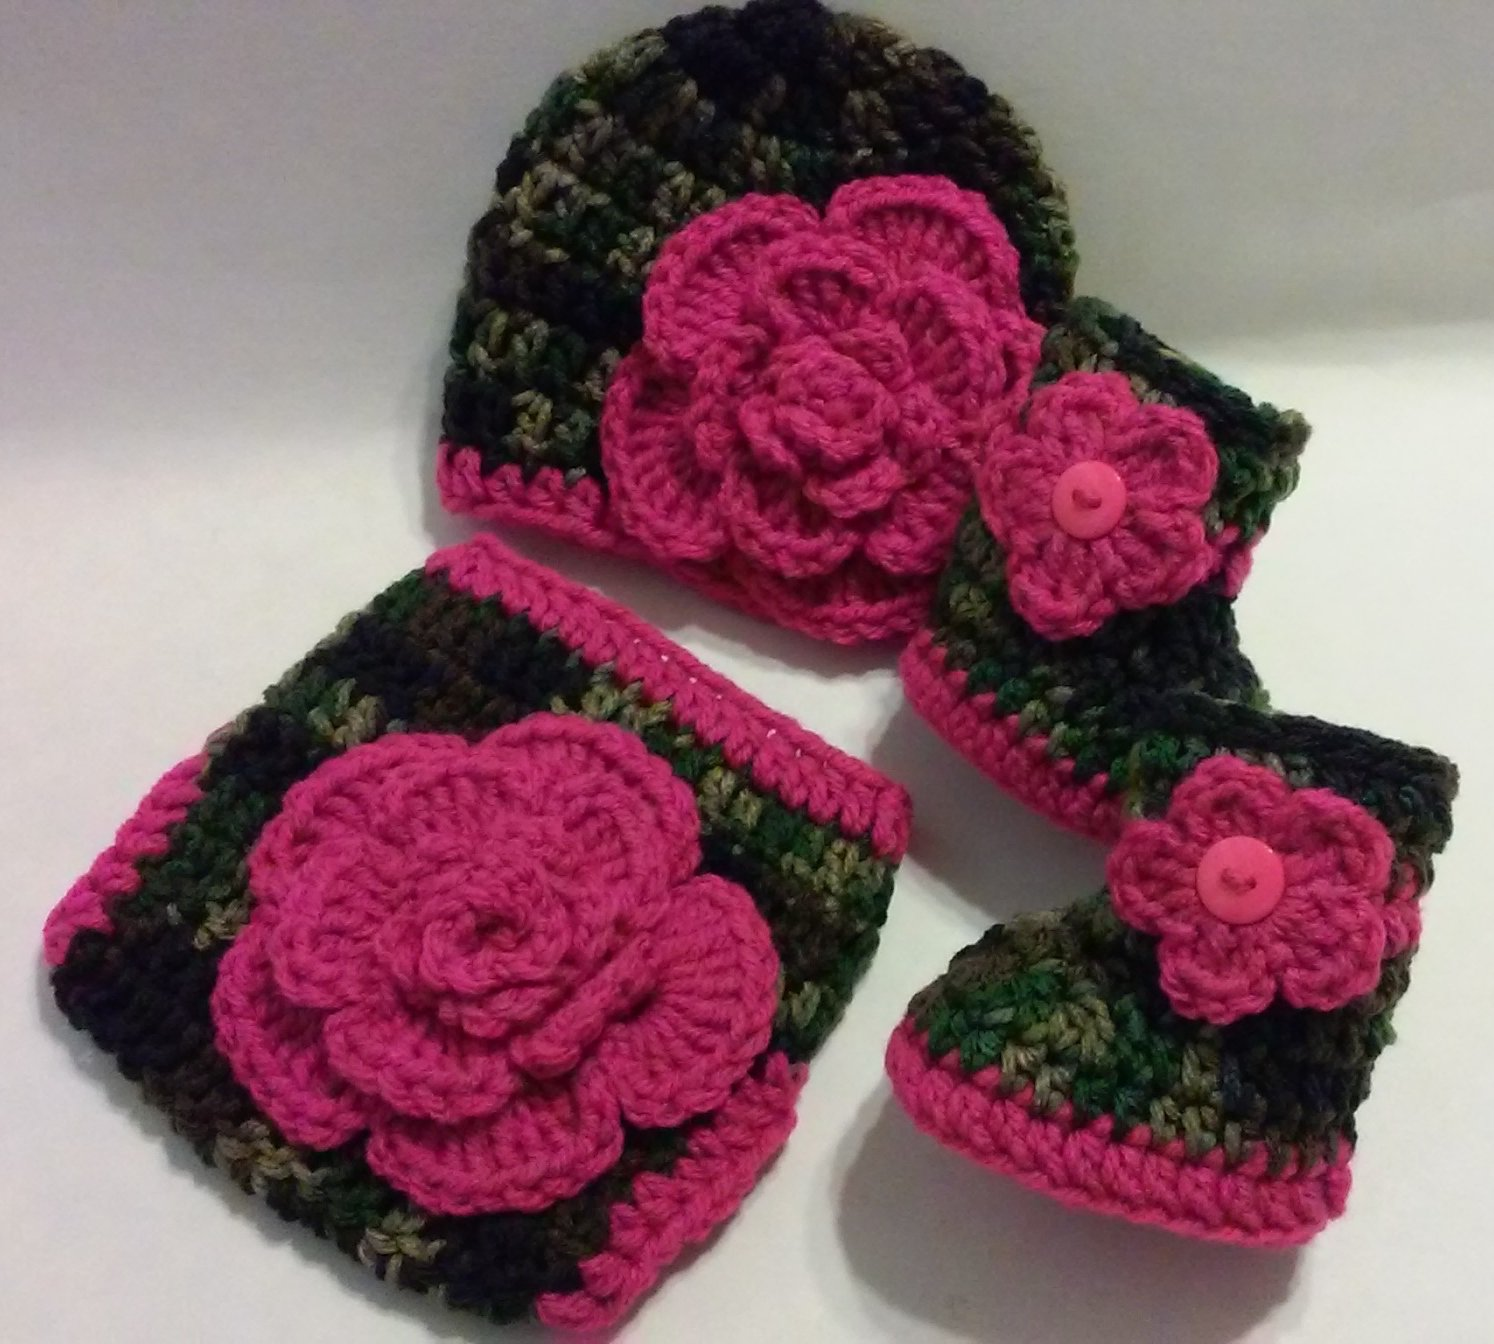 Crochet Dark Camo and Floral Diaper Cover Set in Dark Pink with Hat, Booties Newborn 0-3 Months